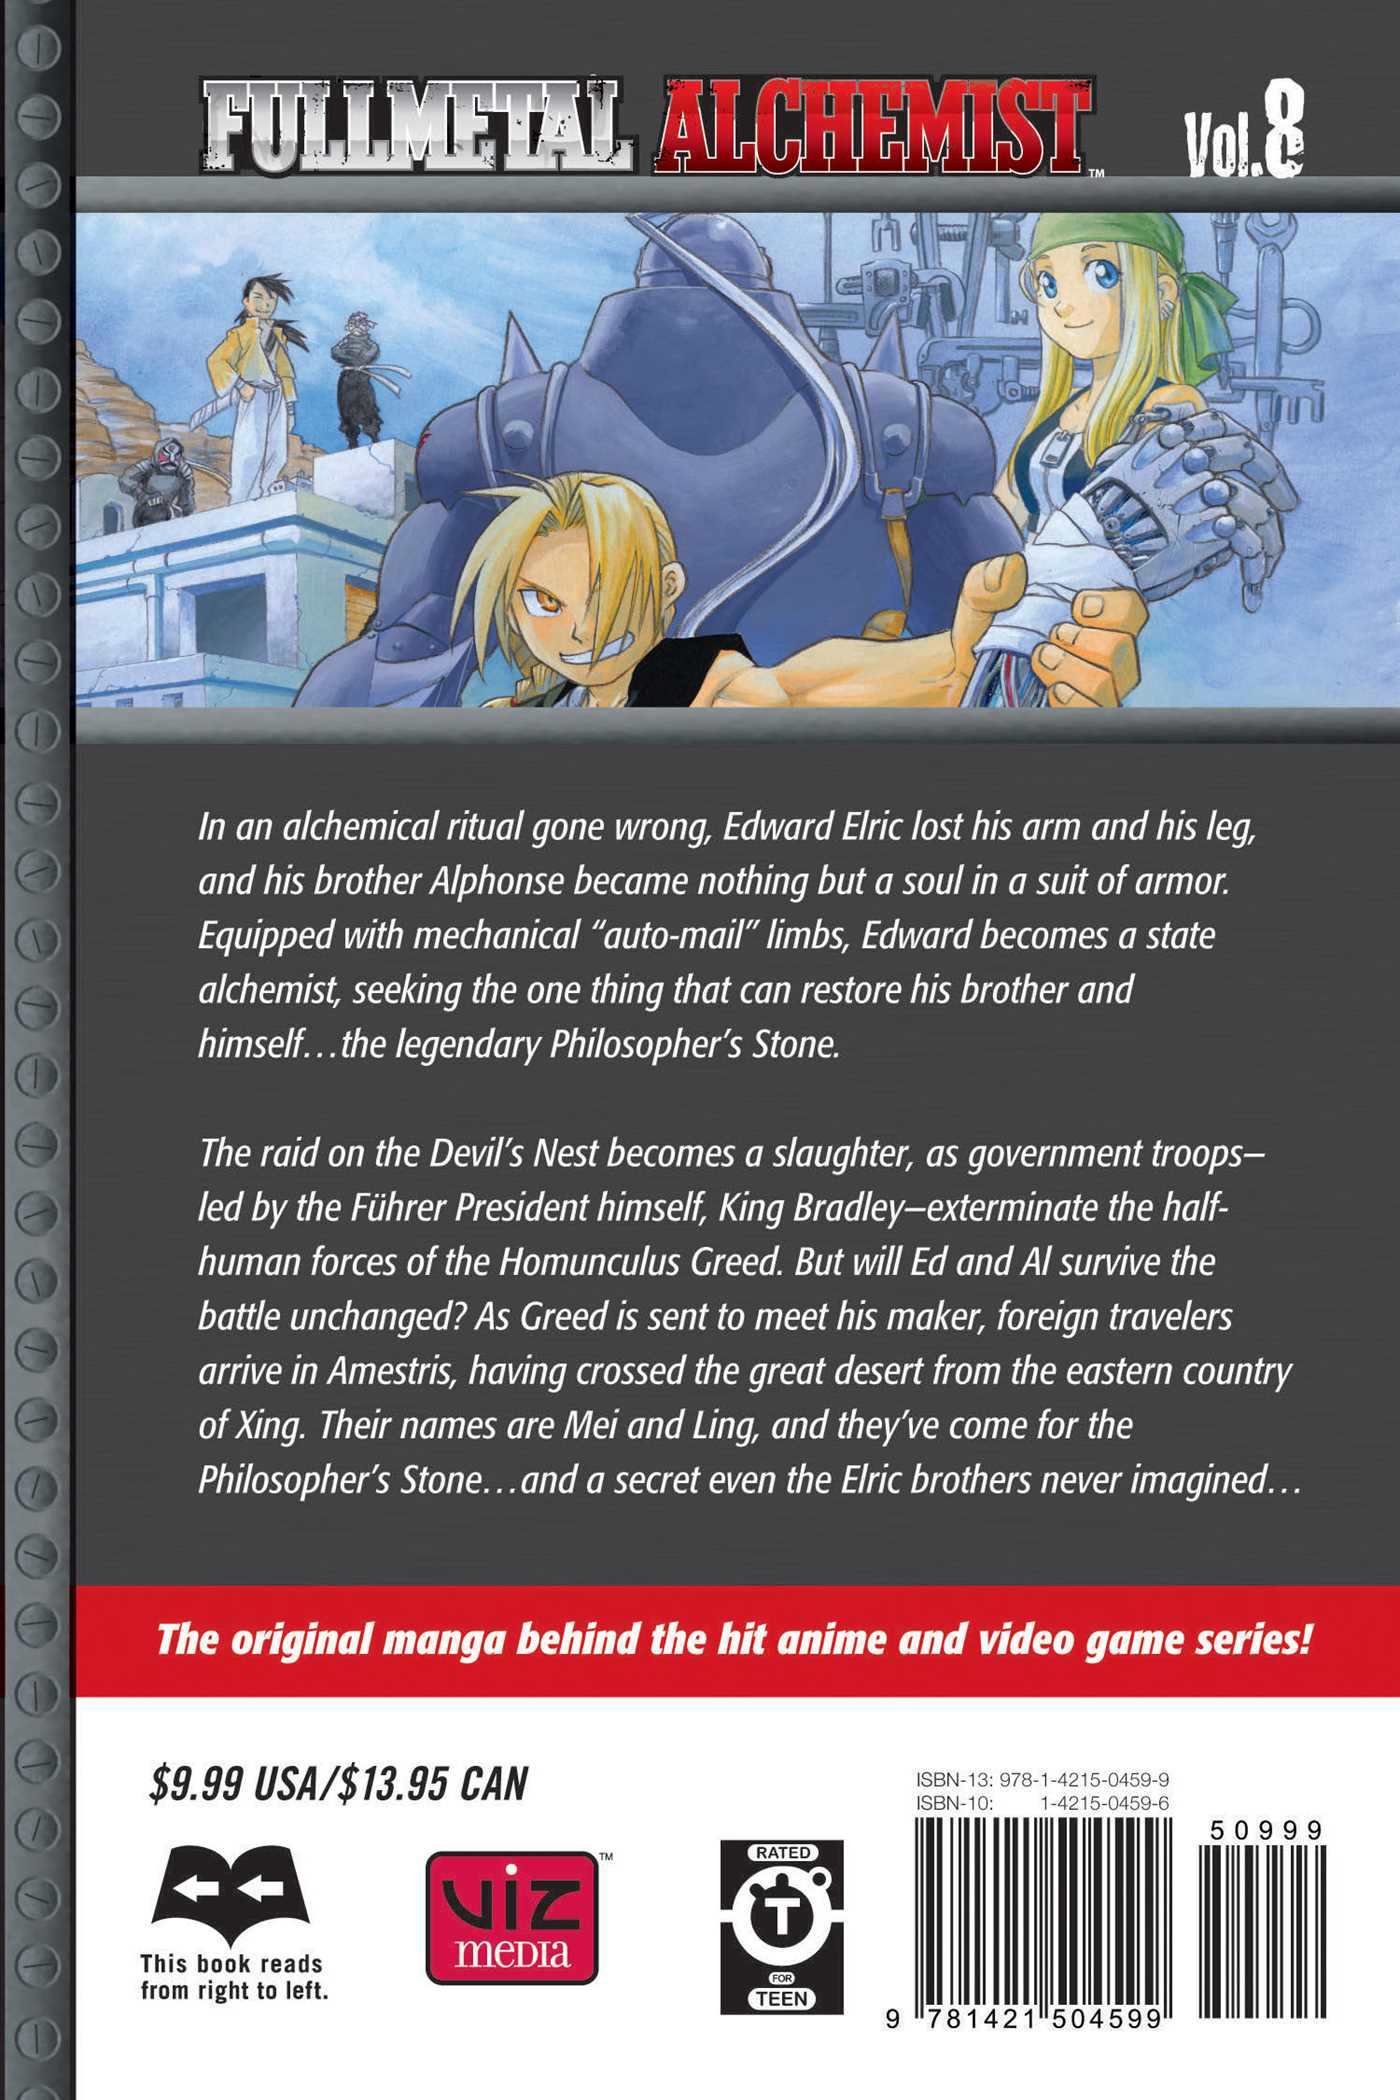 Fullmetal-alchemist-vol-8-9781421504599_hr-back